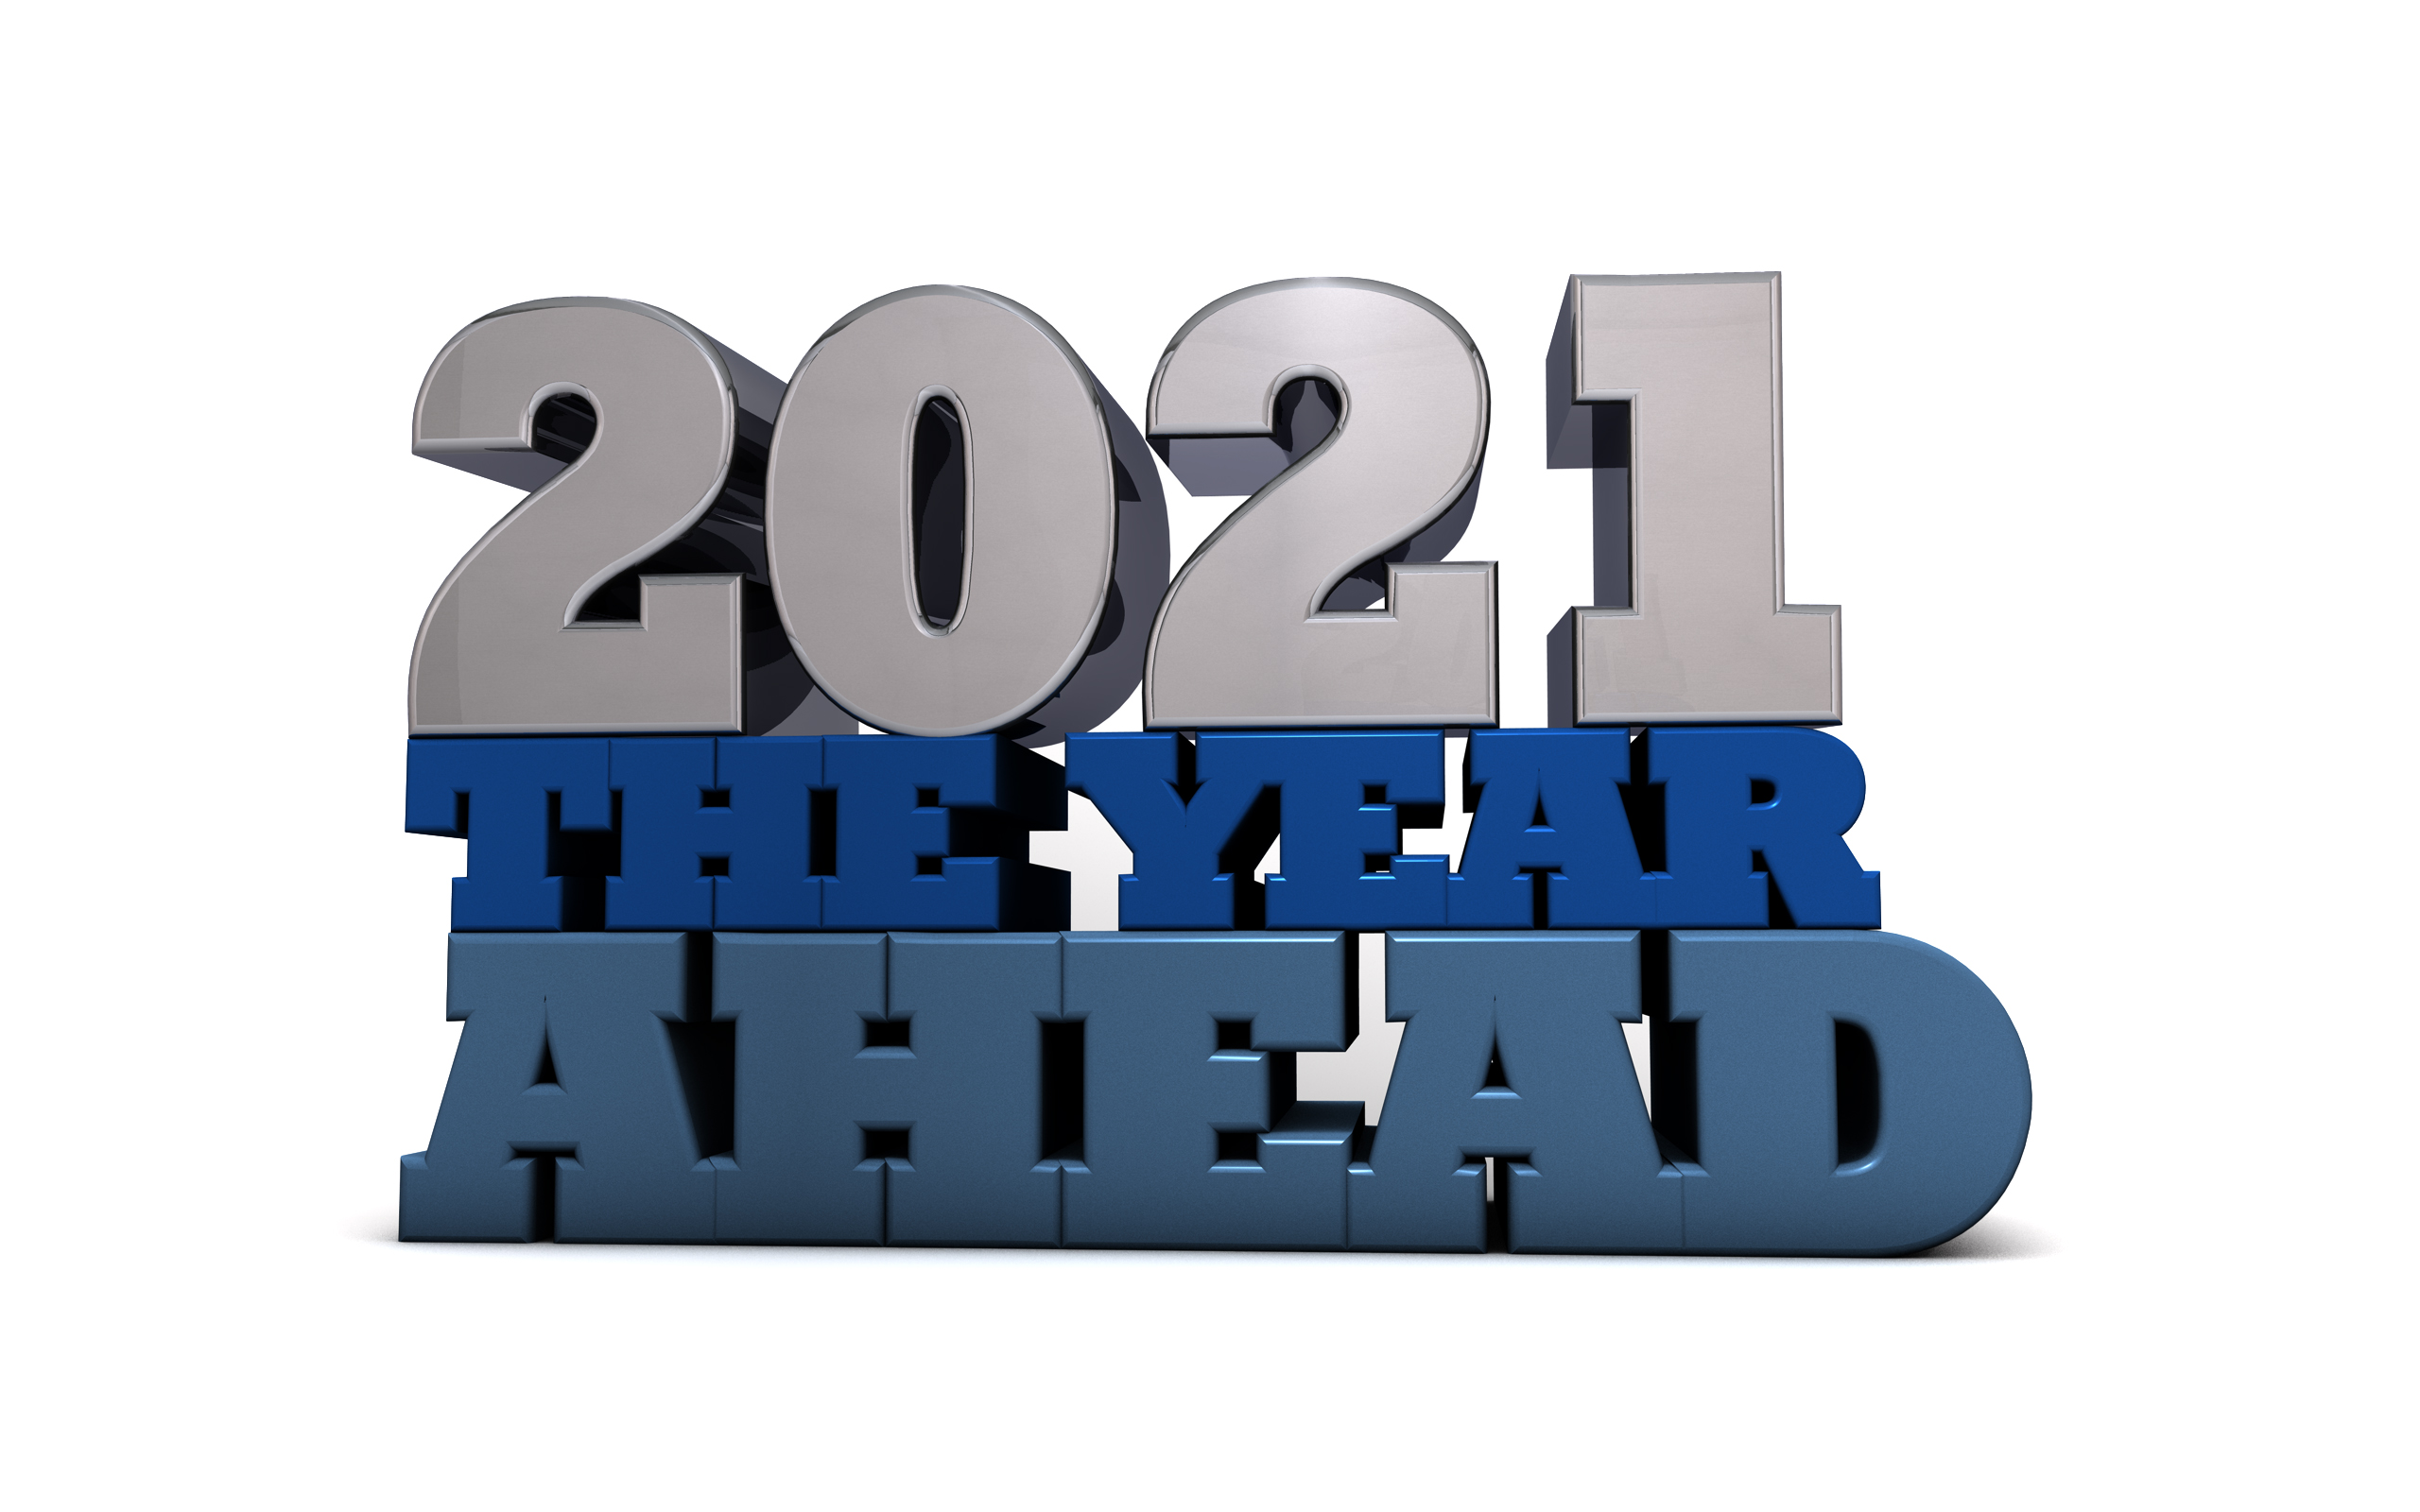 2021 - The year ahead - Free Content Marketing Illustration